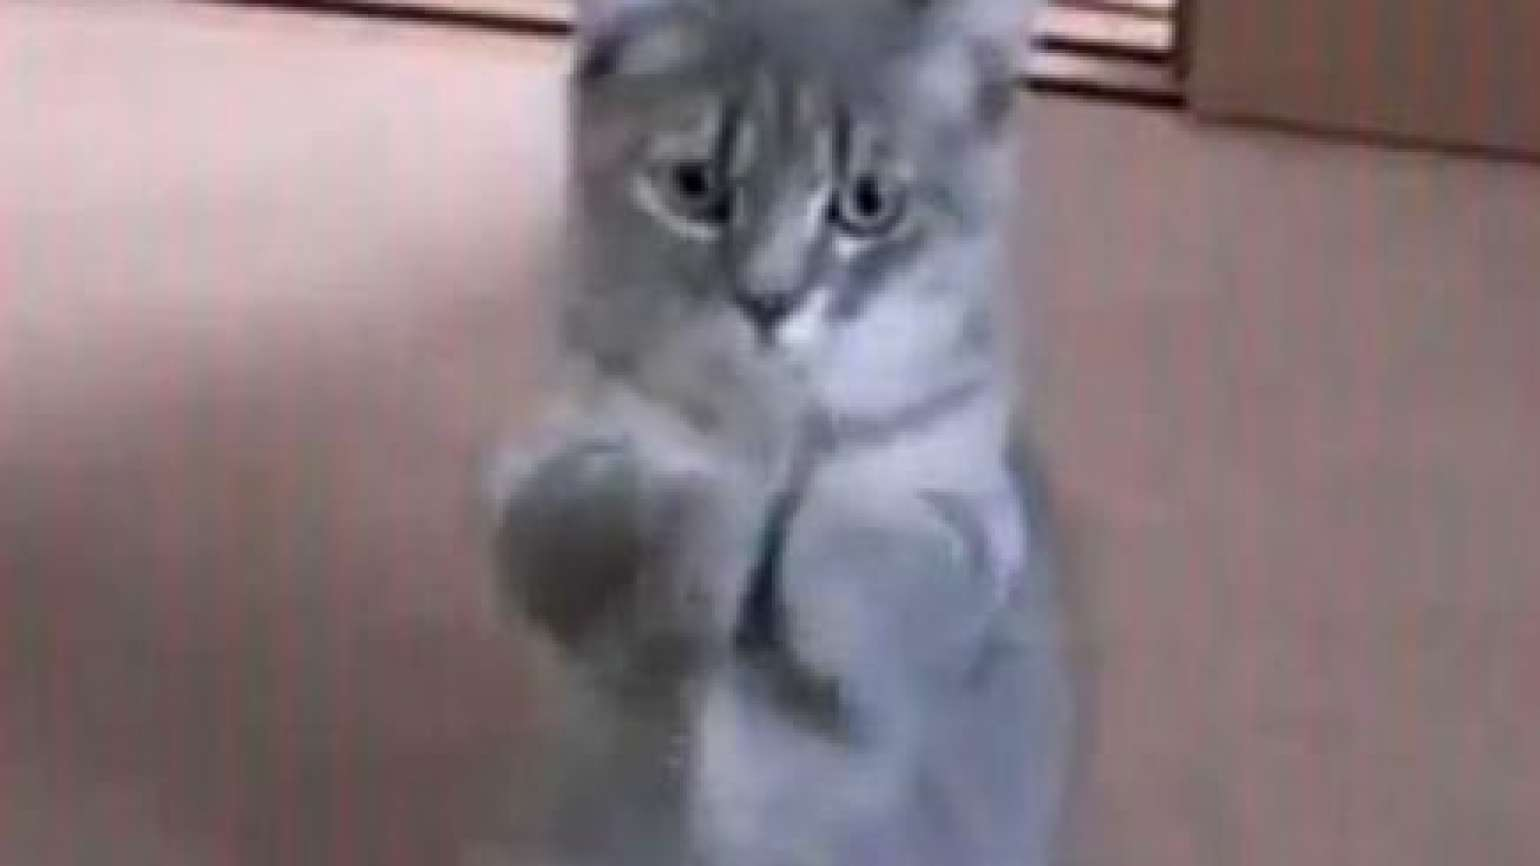 A kitten with paws posed in prayer